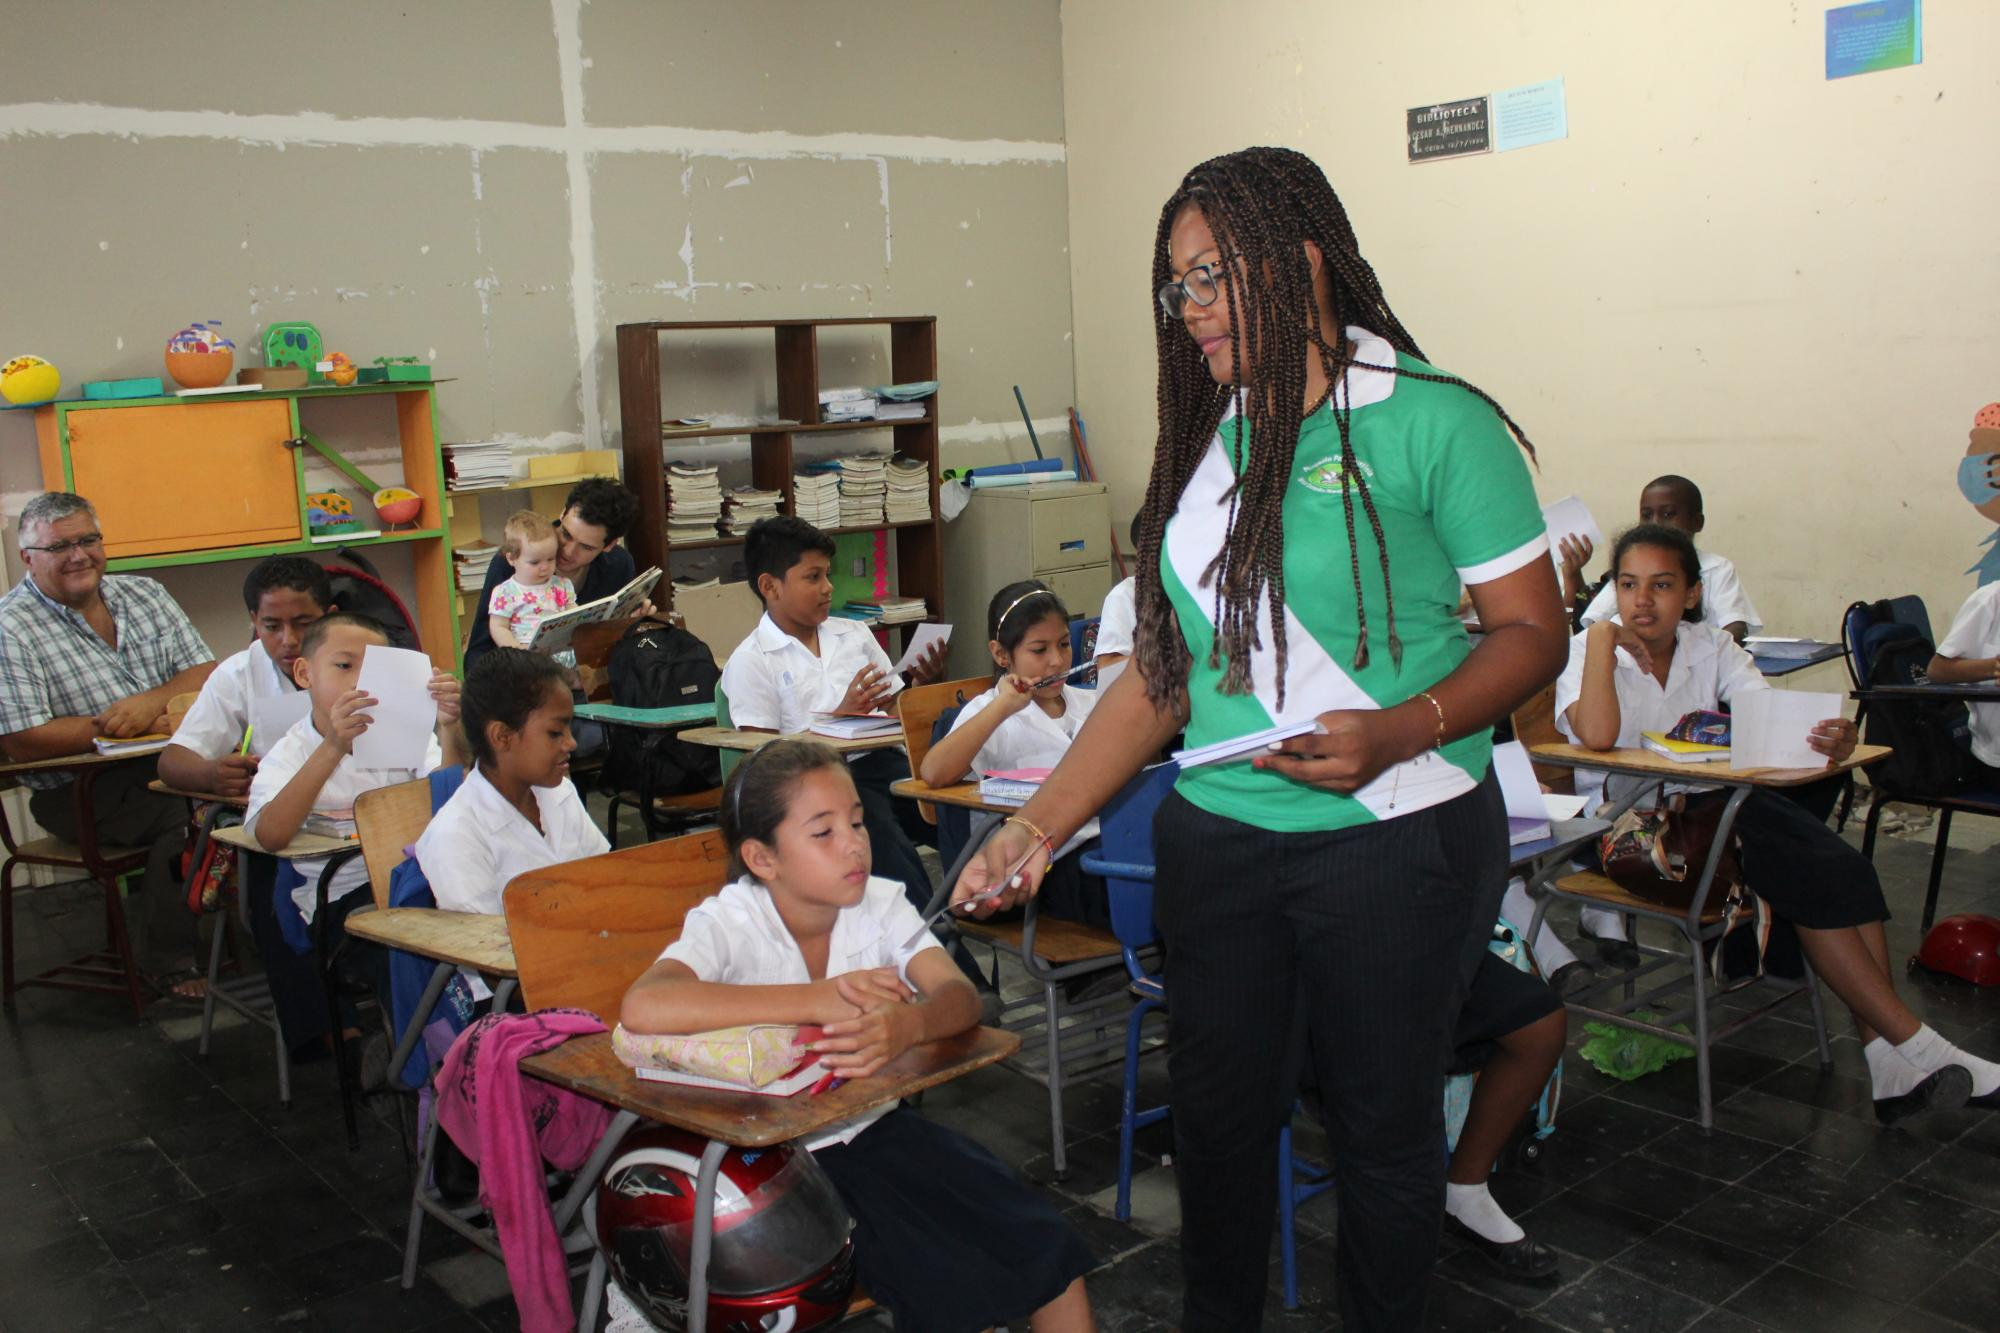 Damaris Guaza Sandoval of Colombia facilitates a workshop on self-esteem for a fourth-grade class at the Francisco Morazán school in La Ceiba, Honduras. MCC photo/Ilona Paganoni